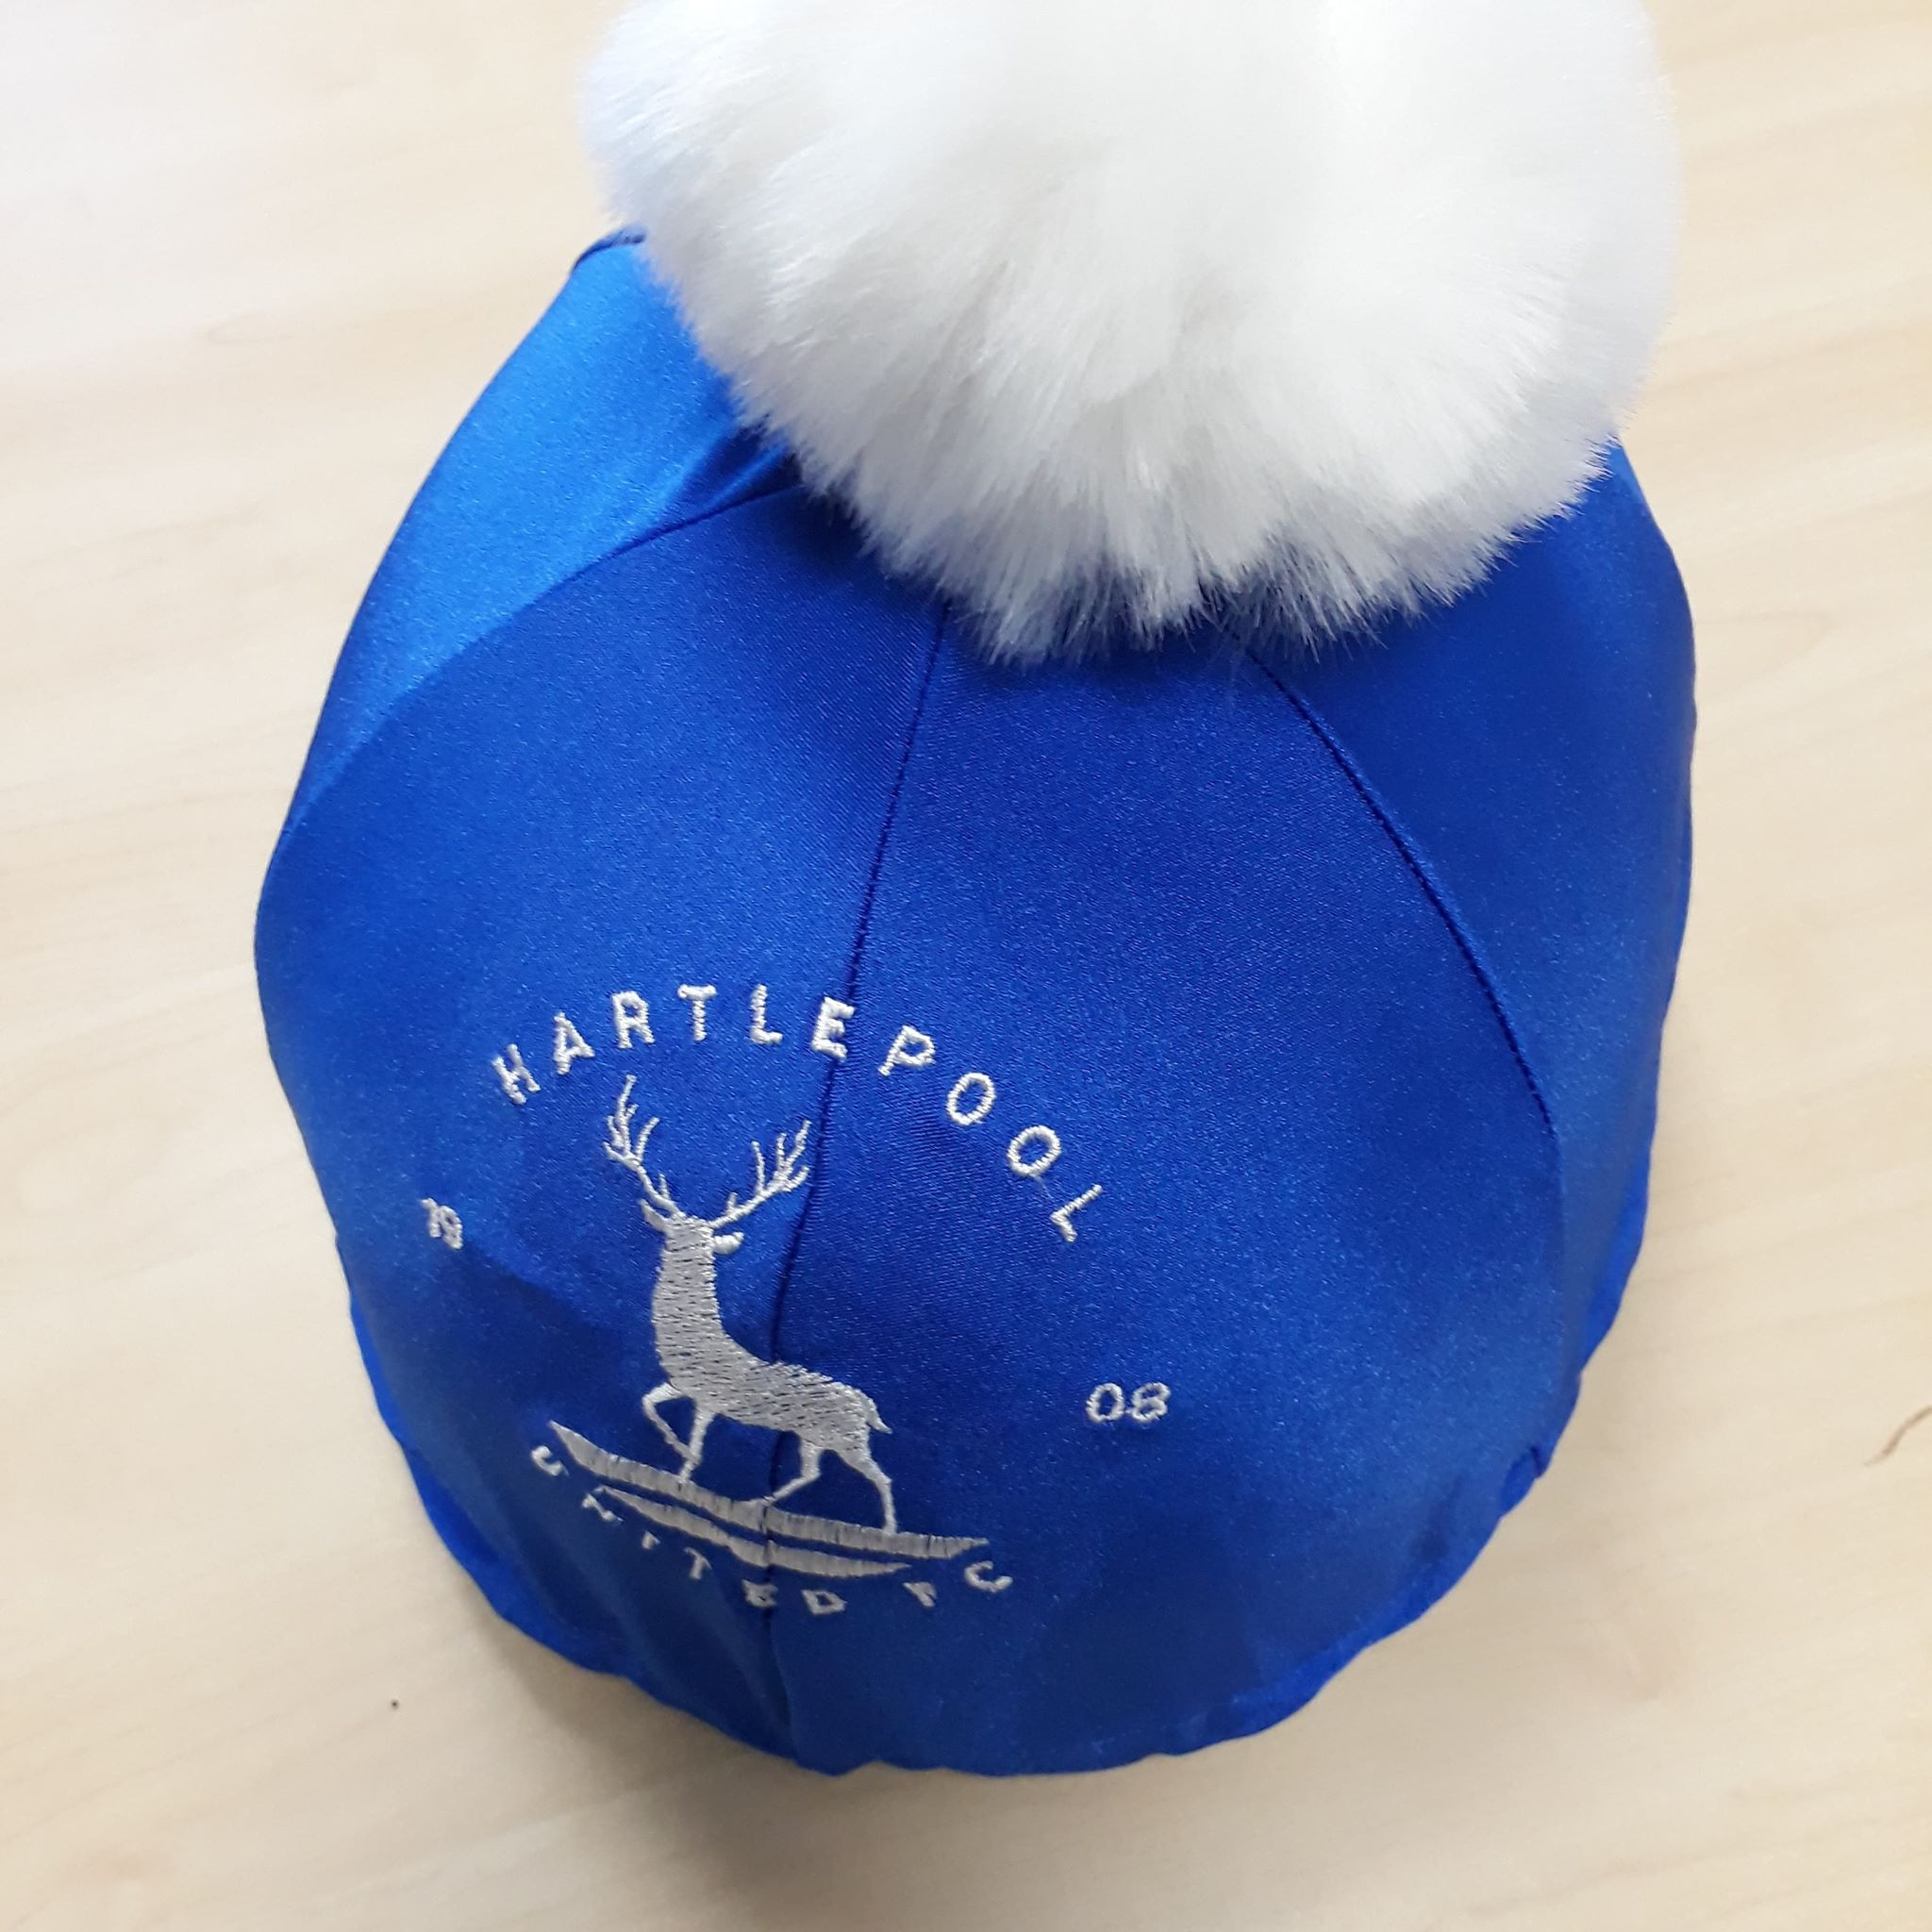 hat silk with logo, bespoke hat silk, personalised hat silks, bespoke equestrian wear, bespoke equestrian items